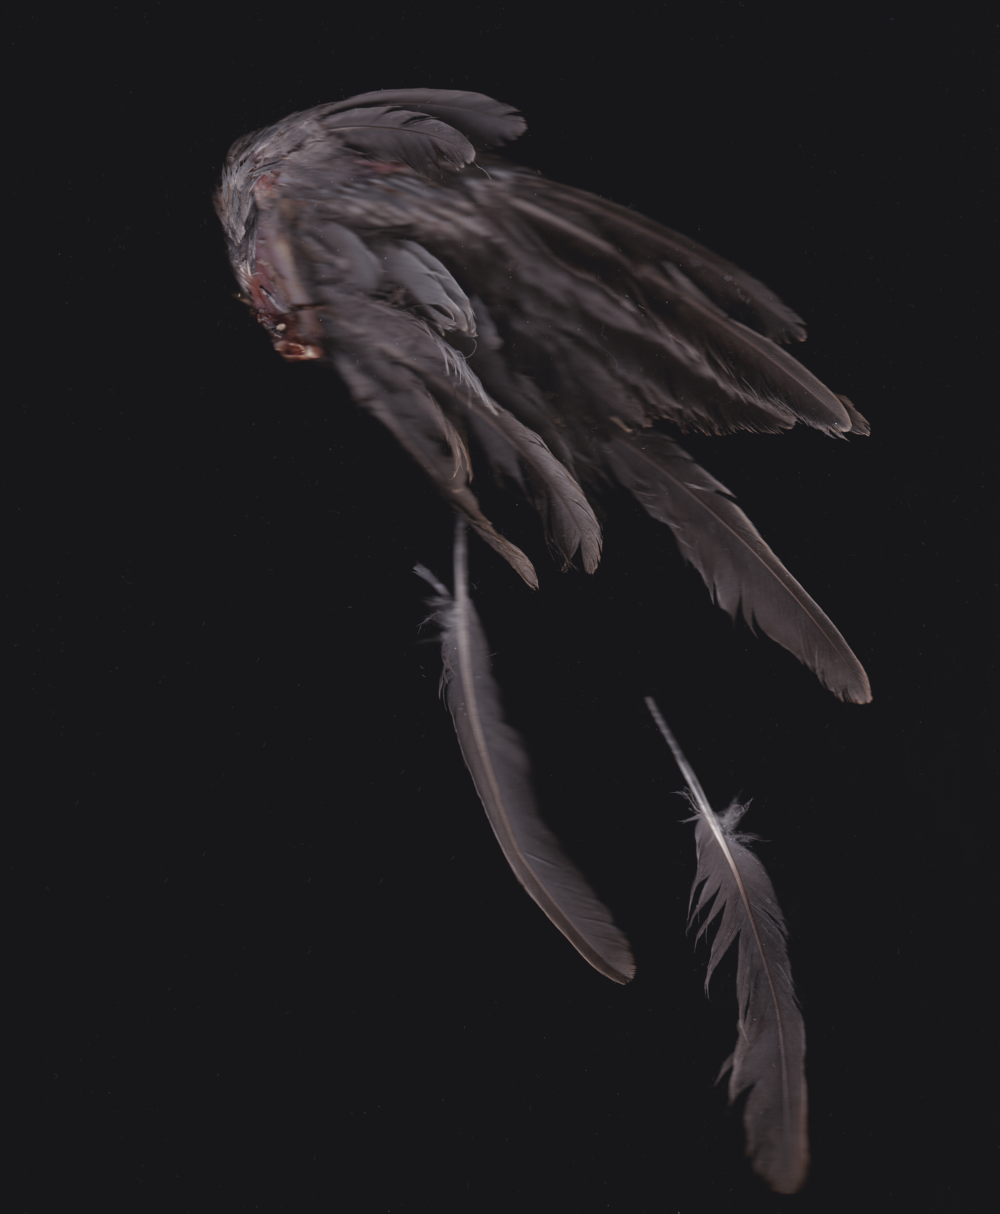 Sarah_Alhussinan_Pigeons_wing.png